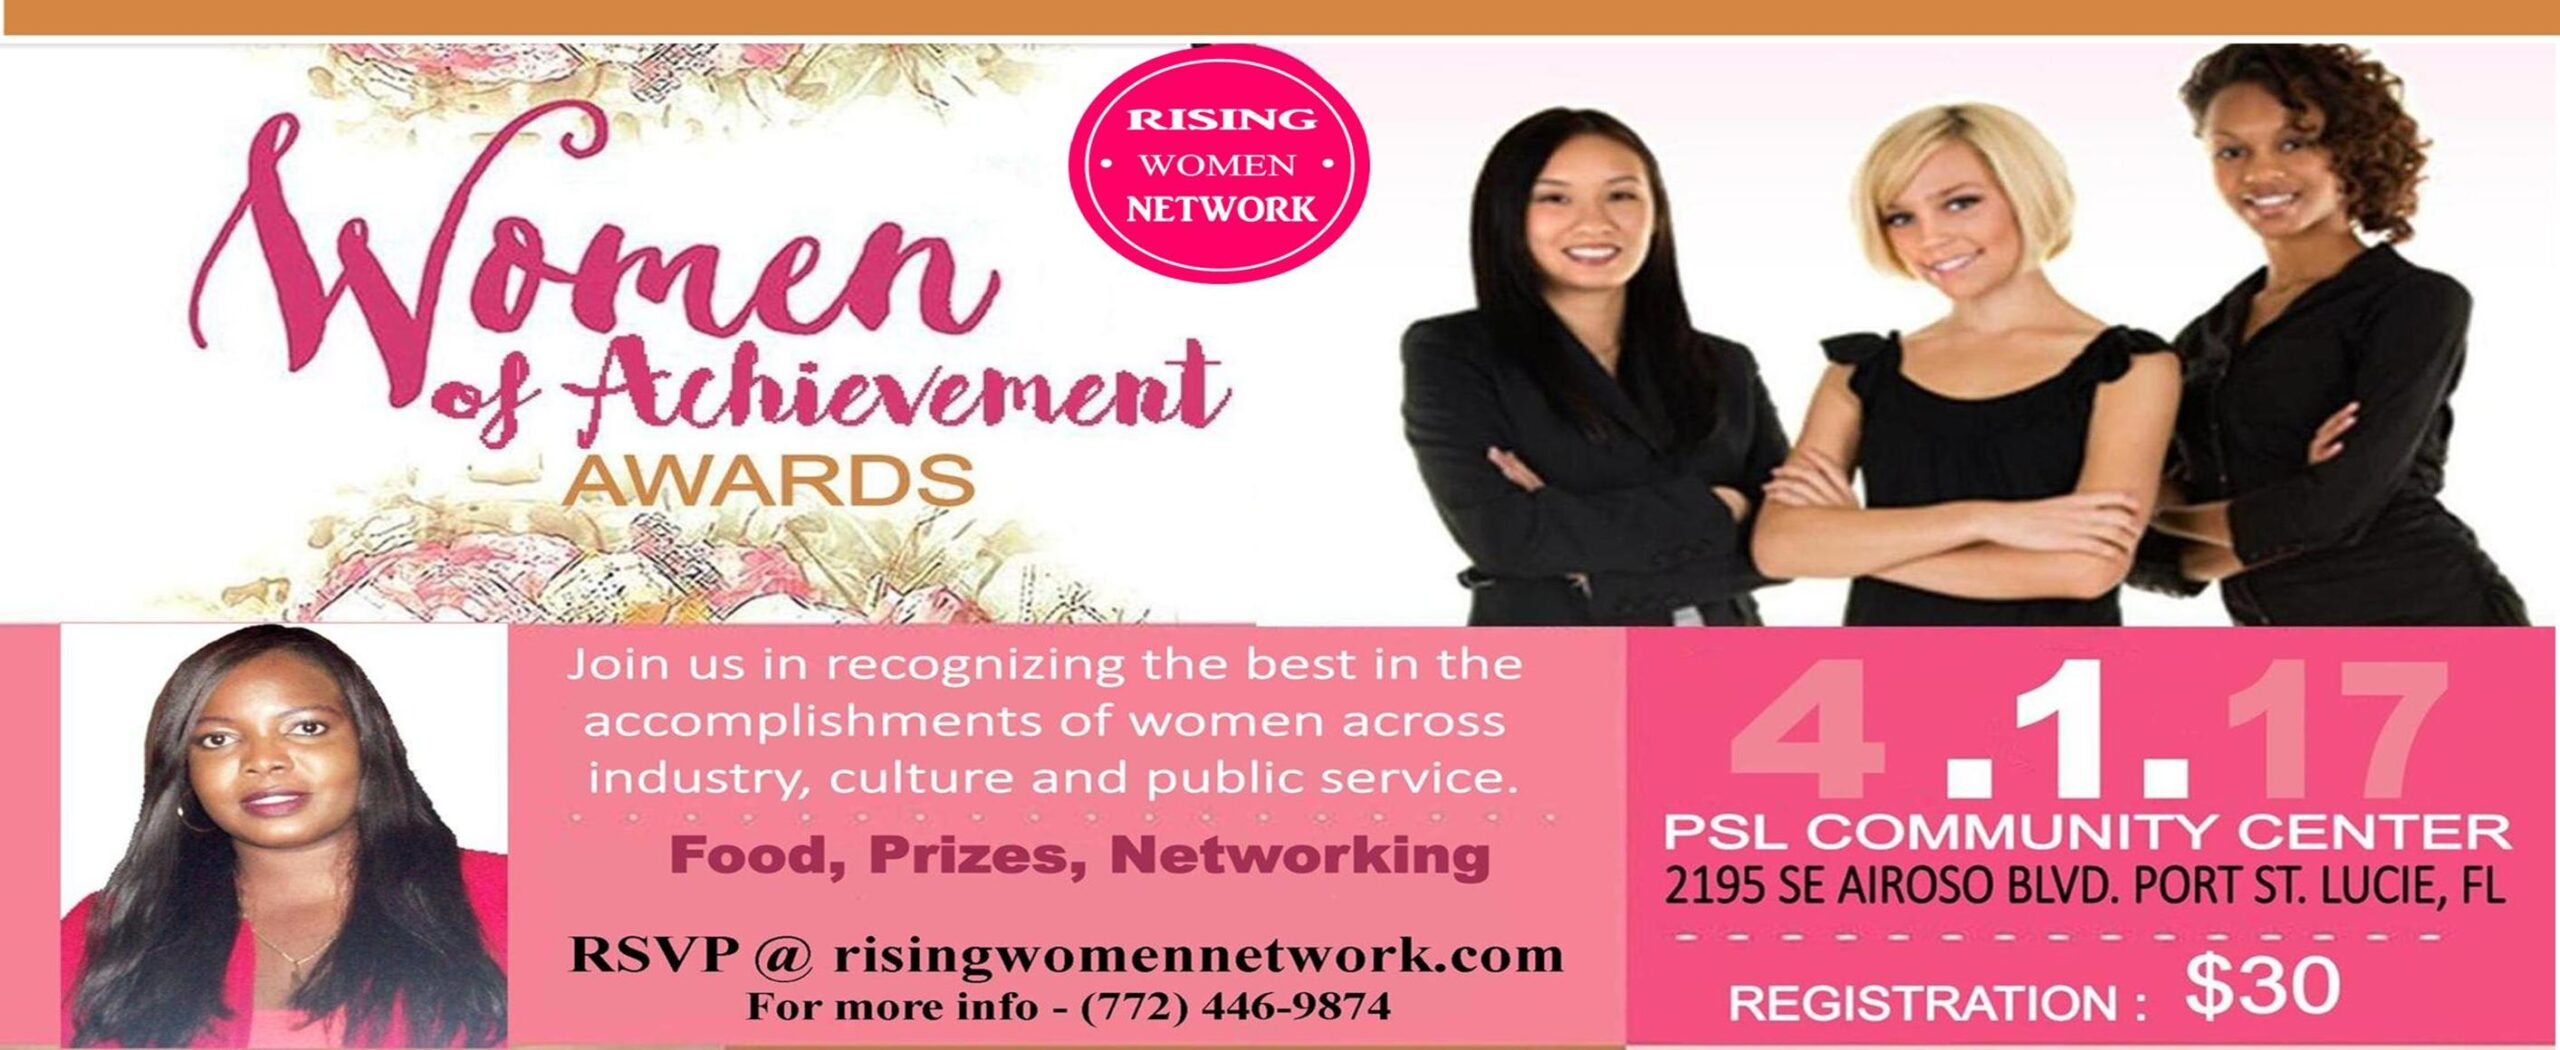 Winners of a Woman of Achievement Award embody our mission by giving generously of themselves to make Their community a better place to live.